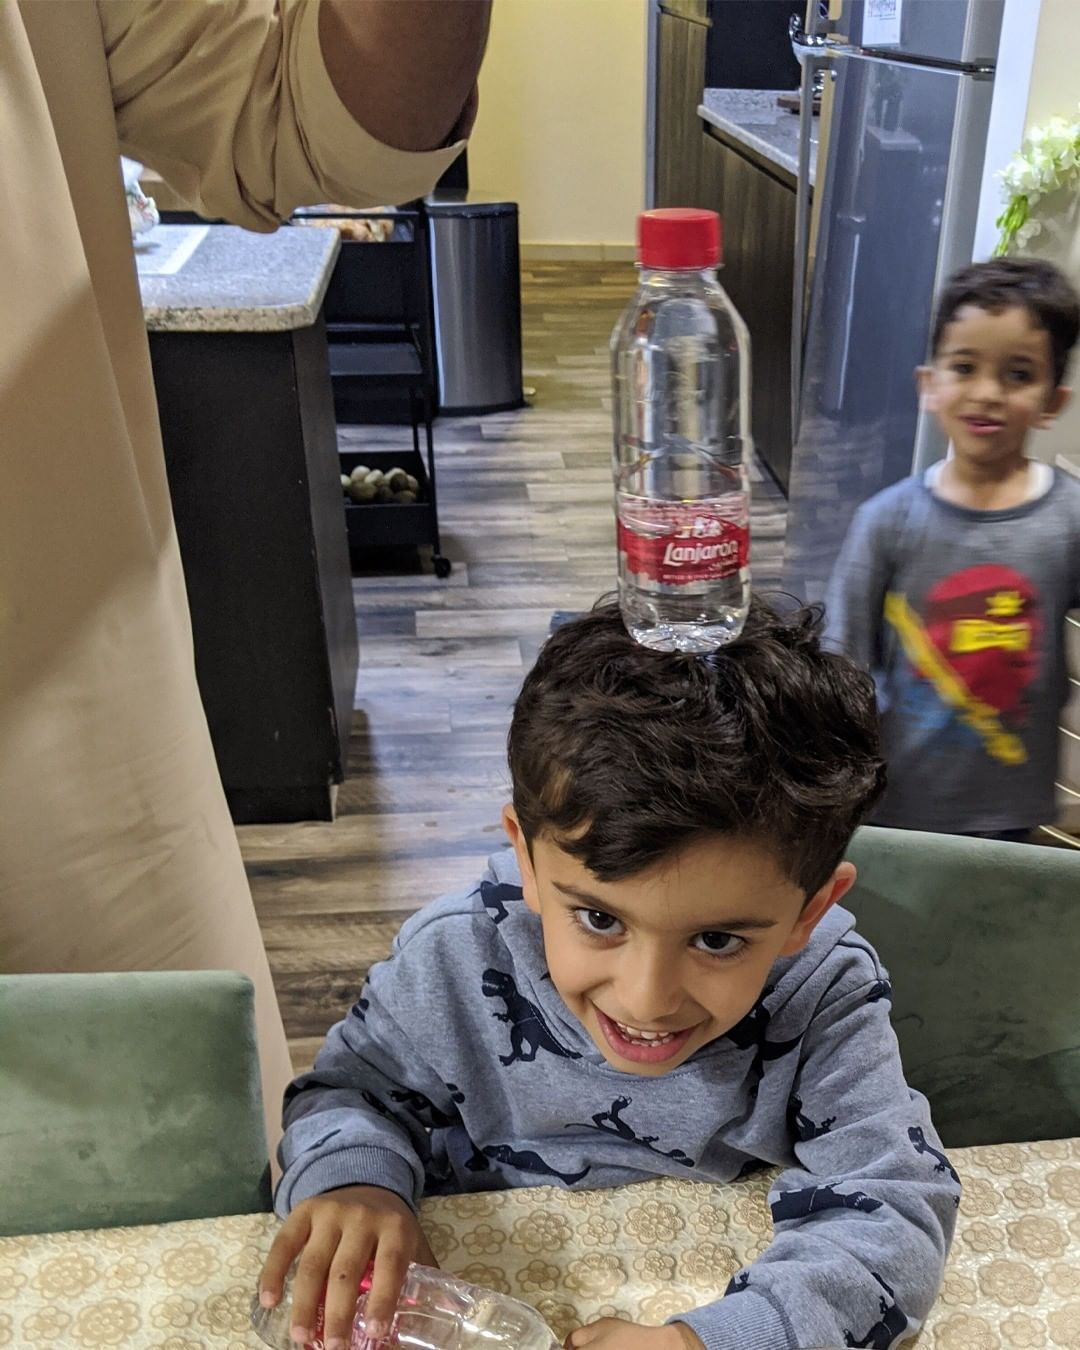 Kids love Lanjarón, its important for them to stay hydrated now more than ever. Keep kids and family home & hydrated with Lanjarón, Pure Natural Mineral Water